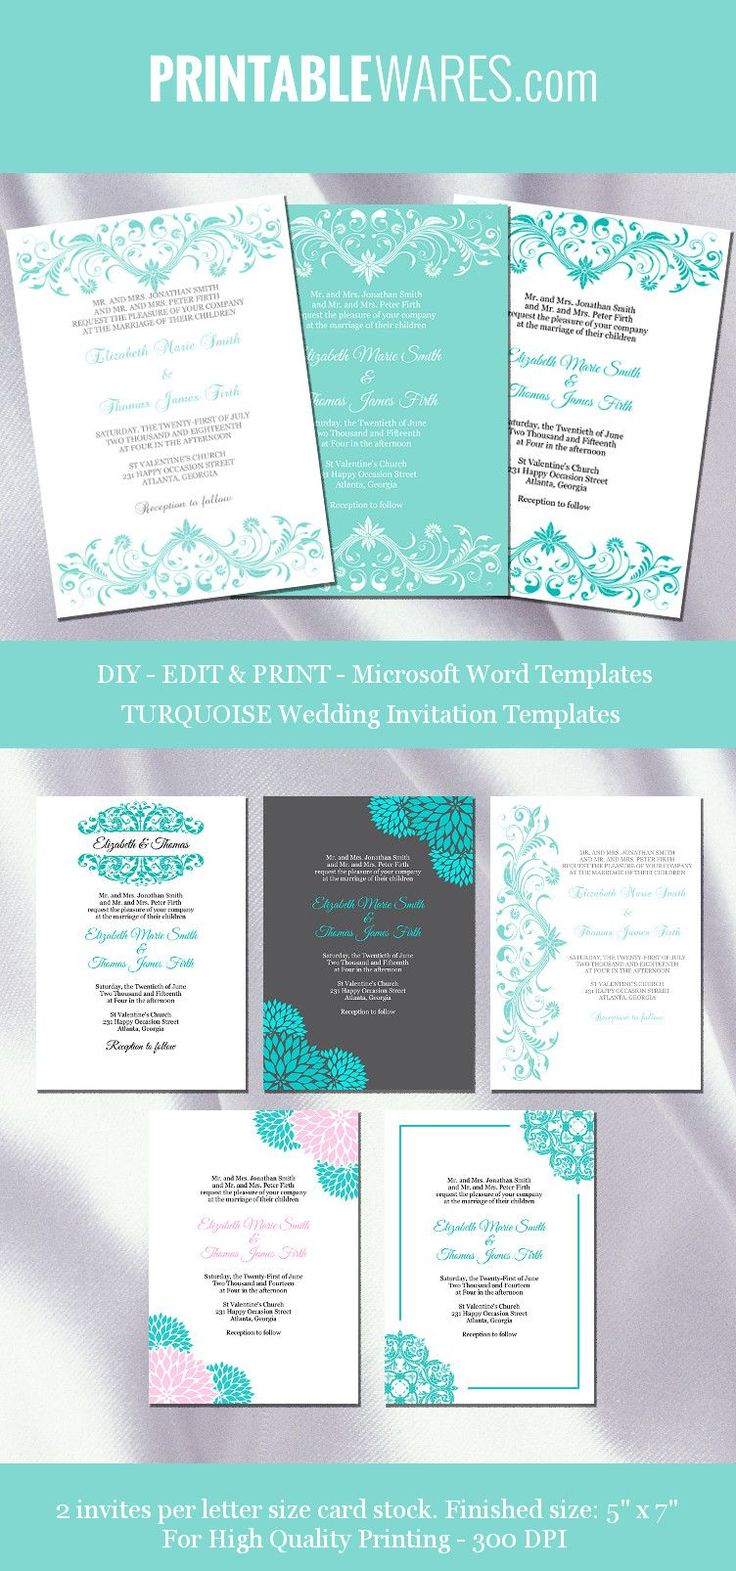 turquoise wedding invitation templates #weddinginvitation